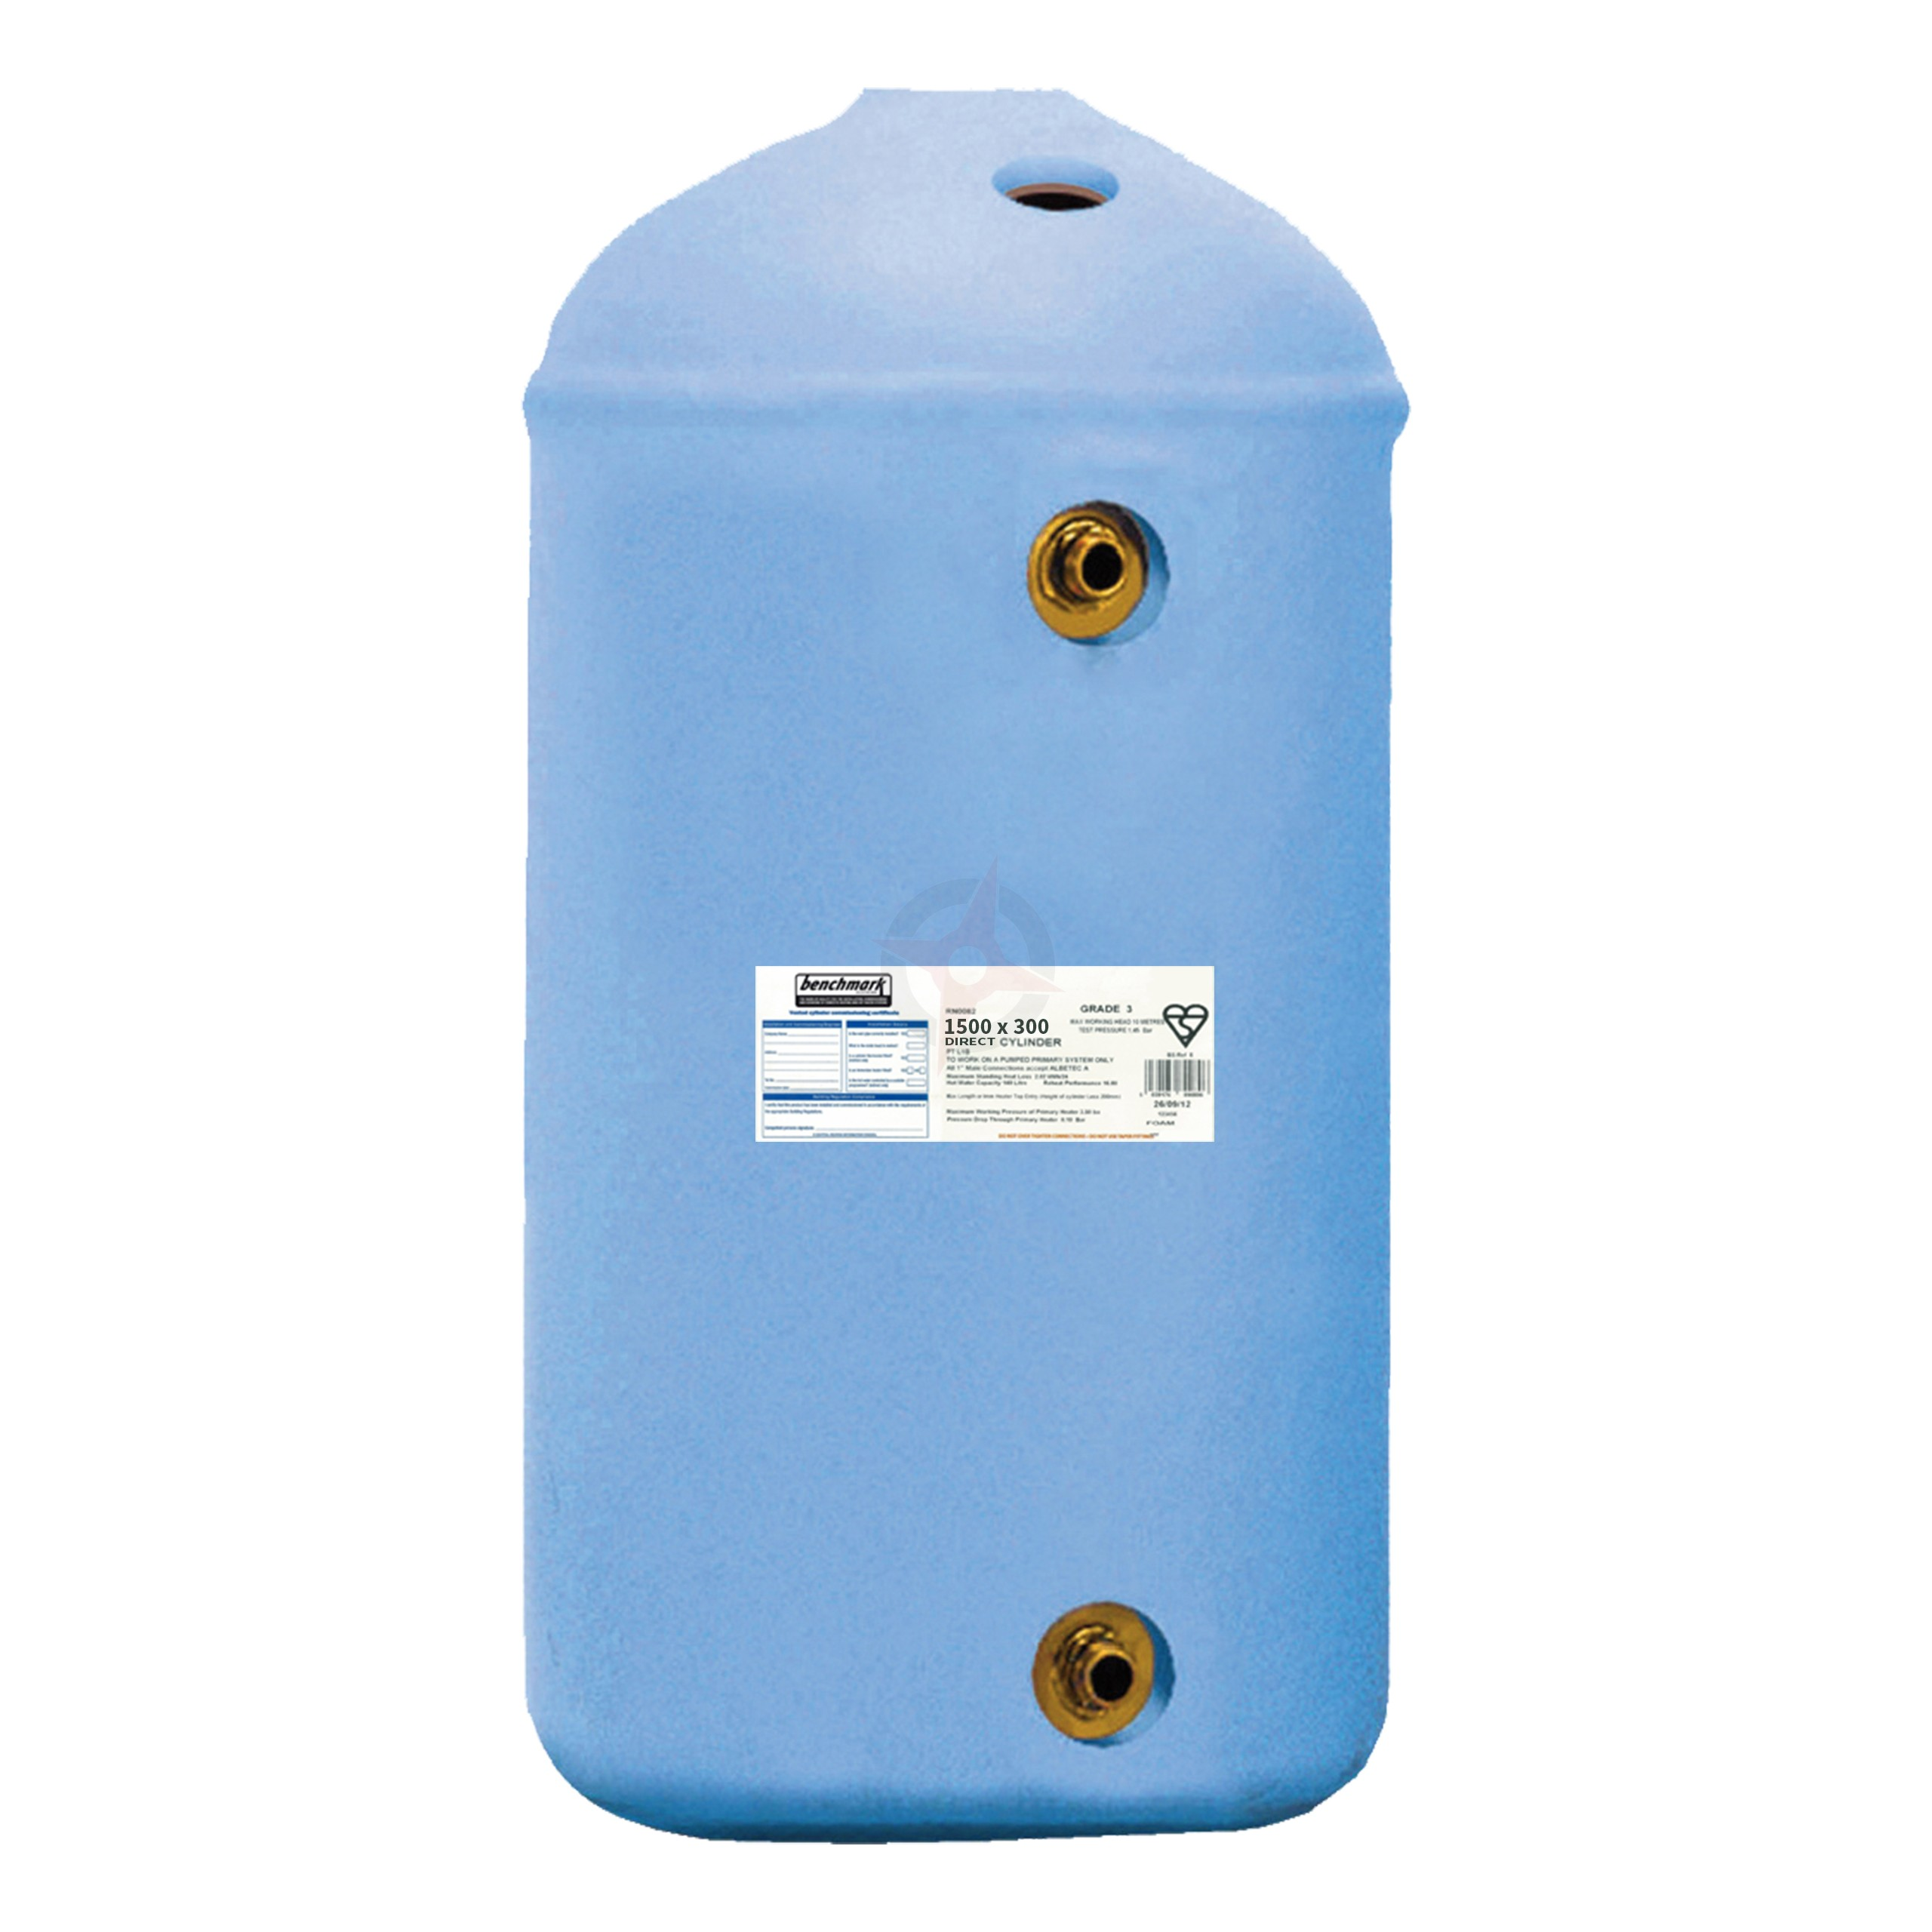 Direct 1500 x 300 Copper Cylinder